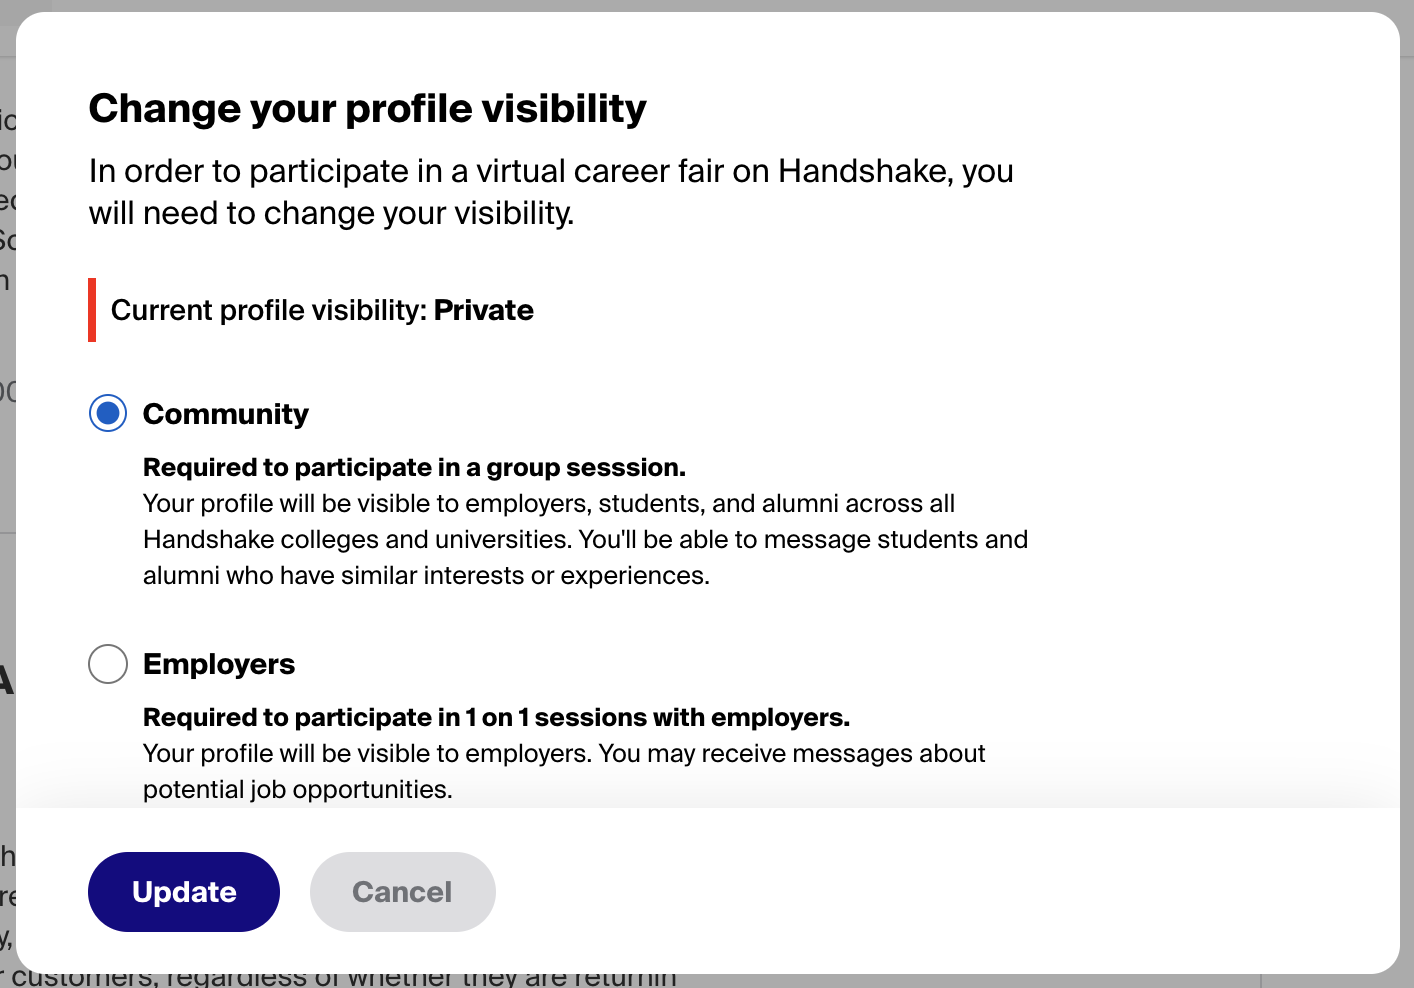 change_profile_visibility_to_participate.png